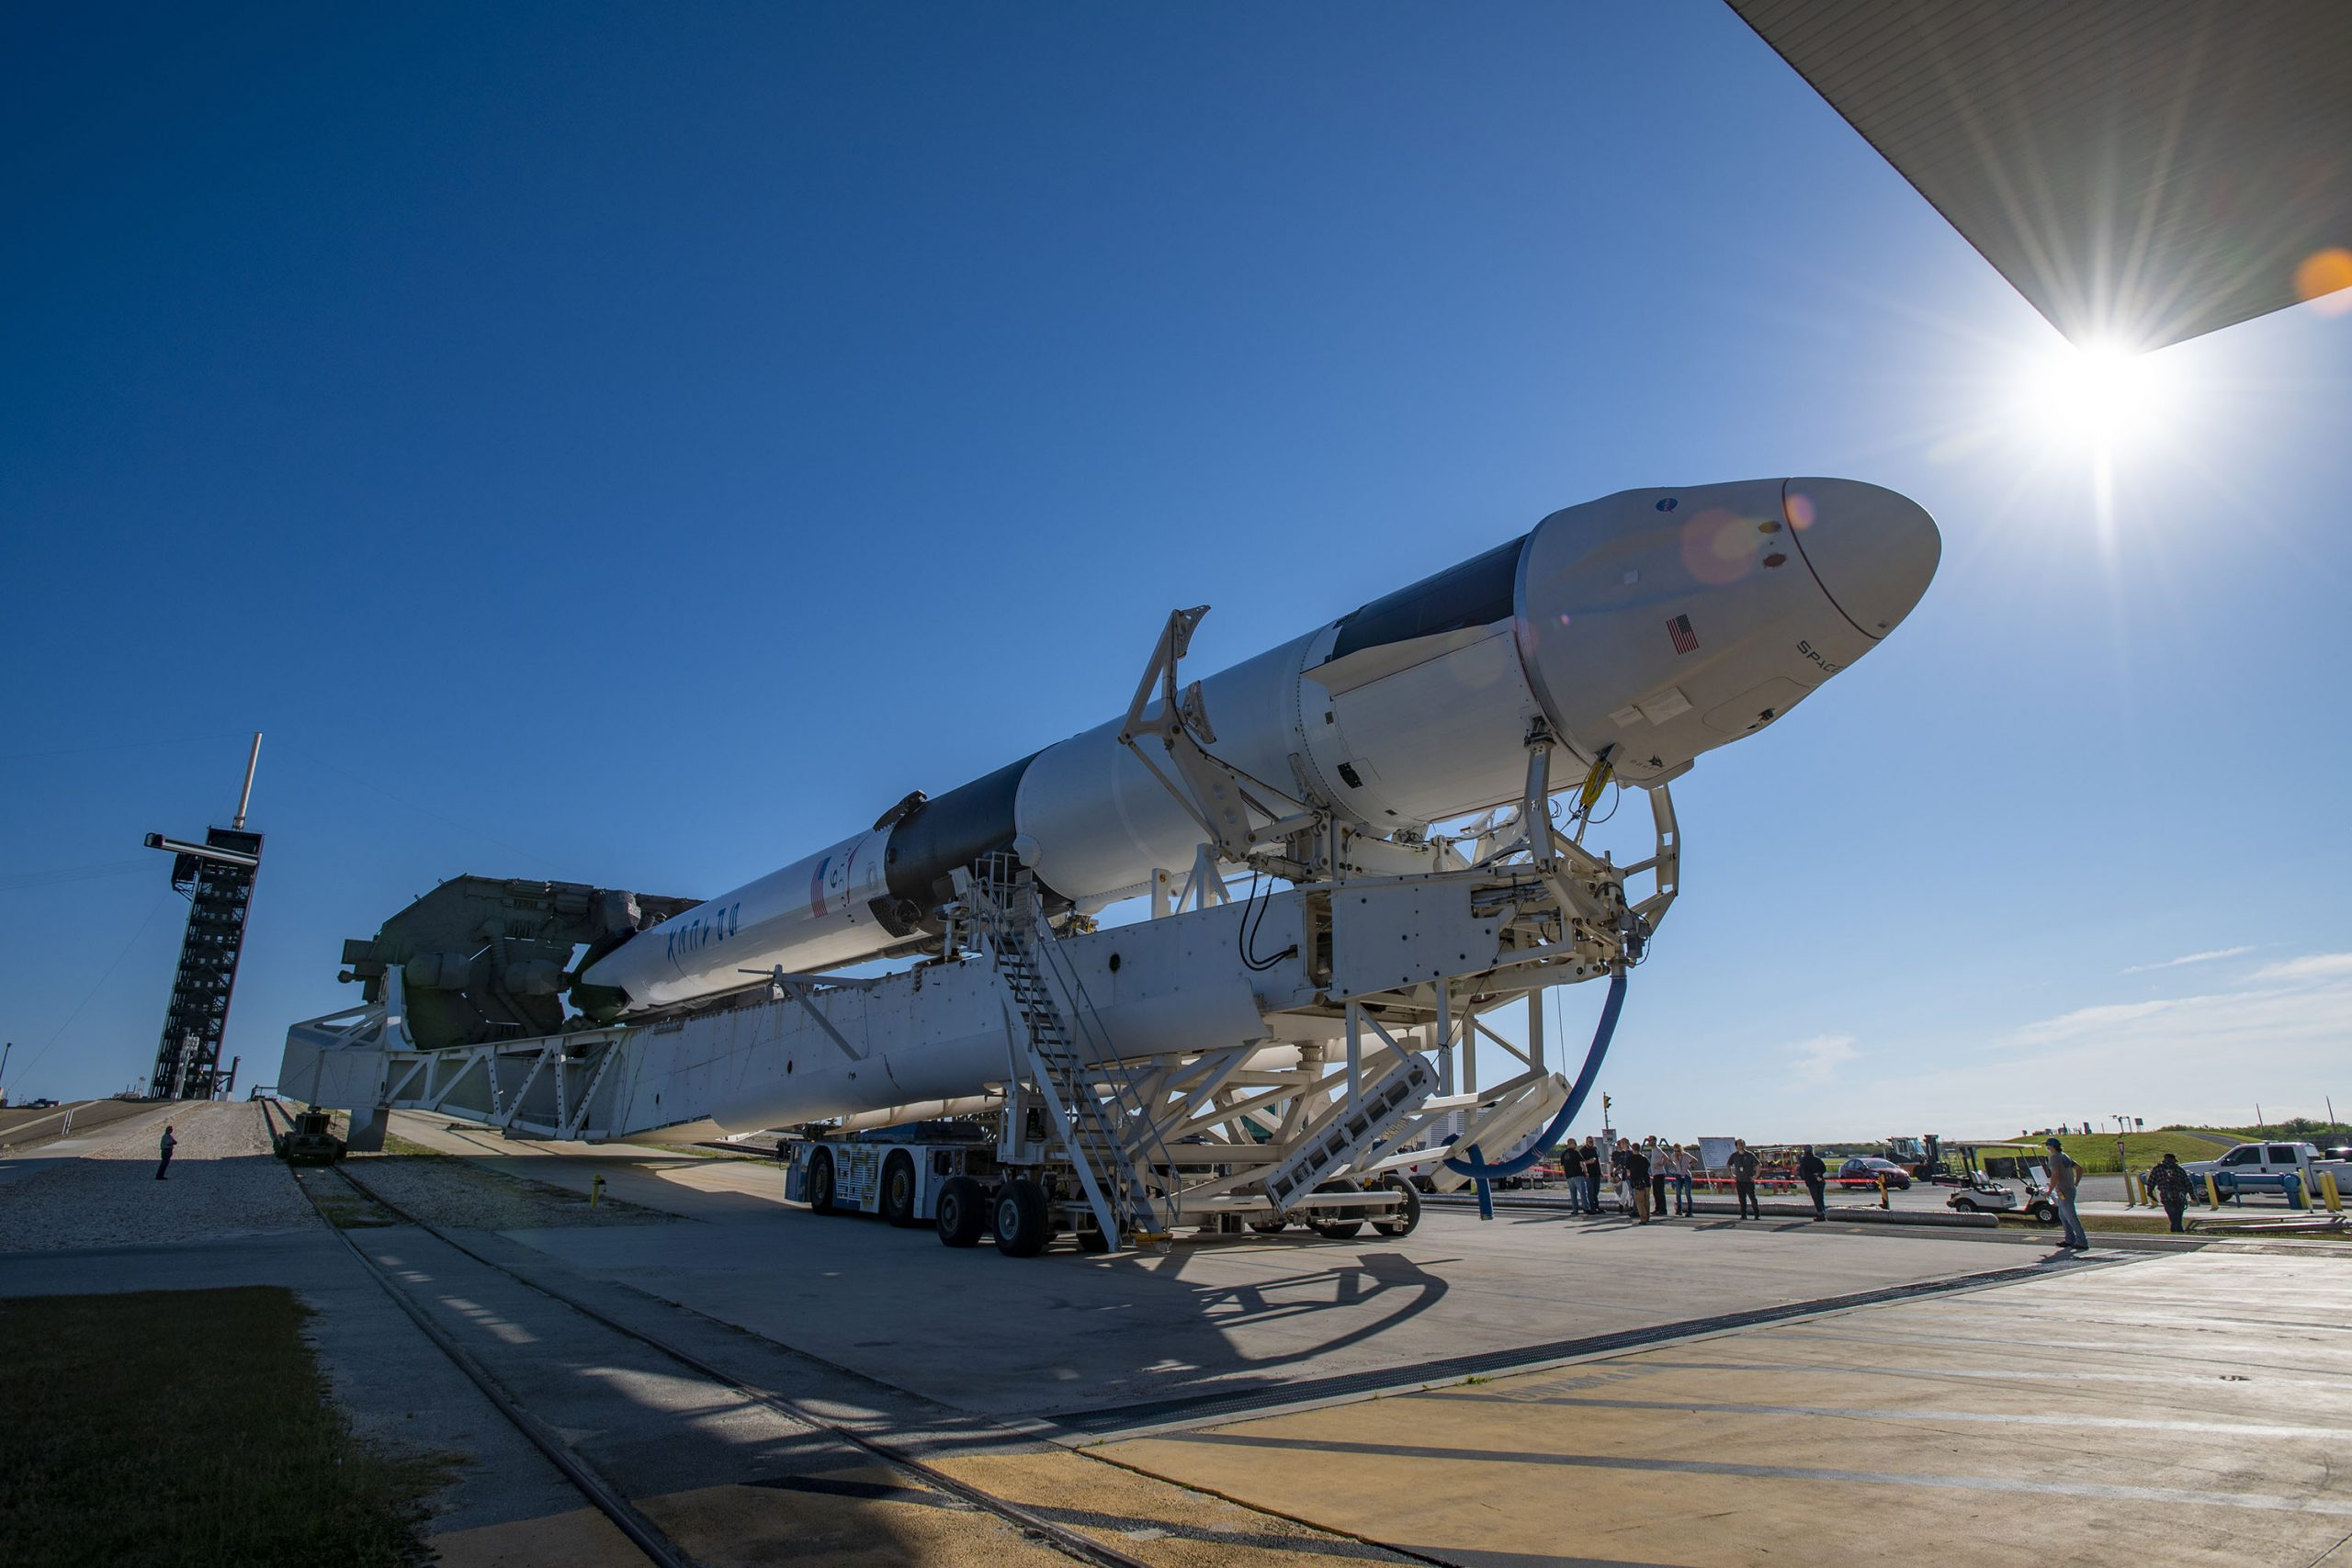 The SpaceX Falcon 9 rocket and Dragon spacecraft are rolled out to the launch pad in preparation for the CRS-22 mission.